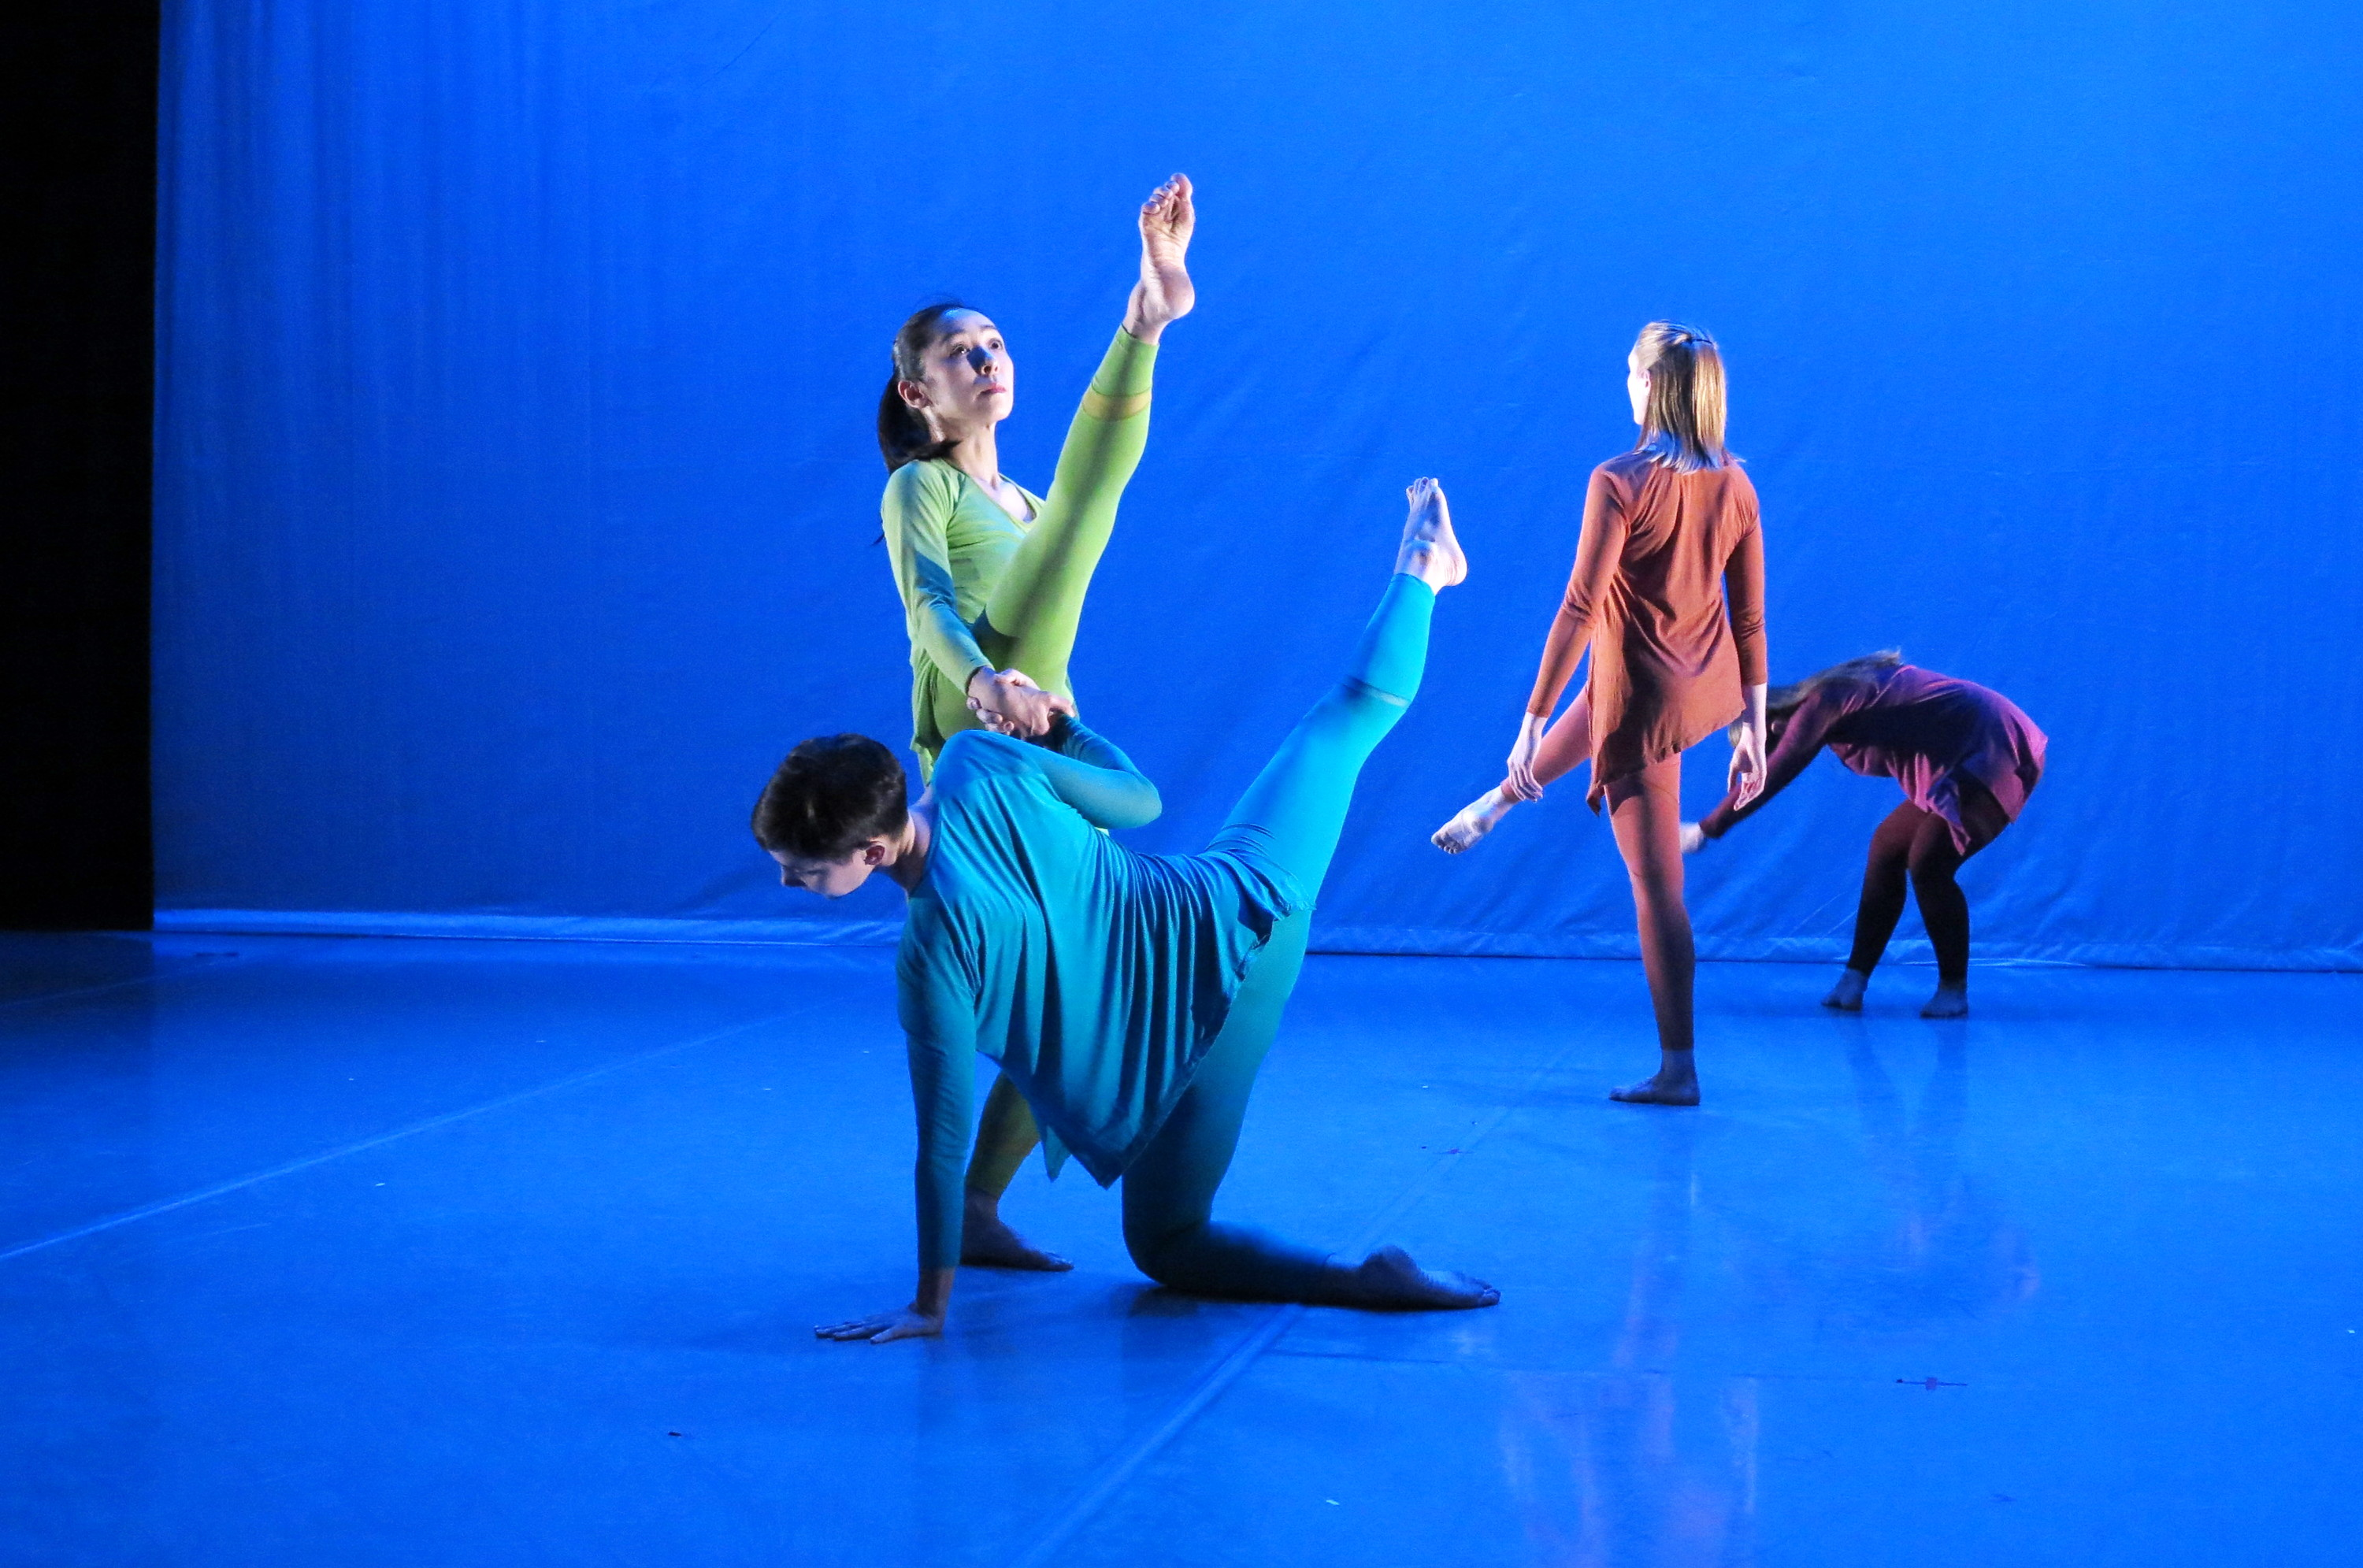 Vencl Dance at the Martha Graham Center of Contemporary Dance, February 2016